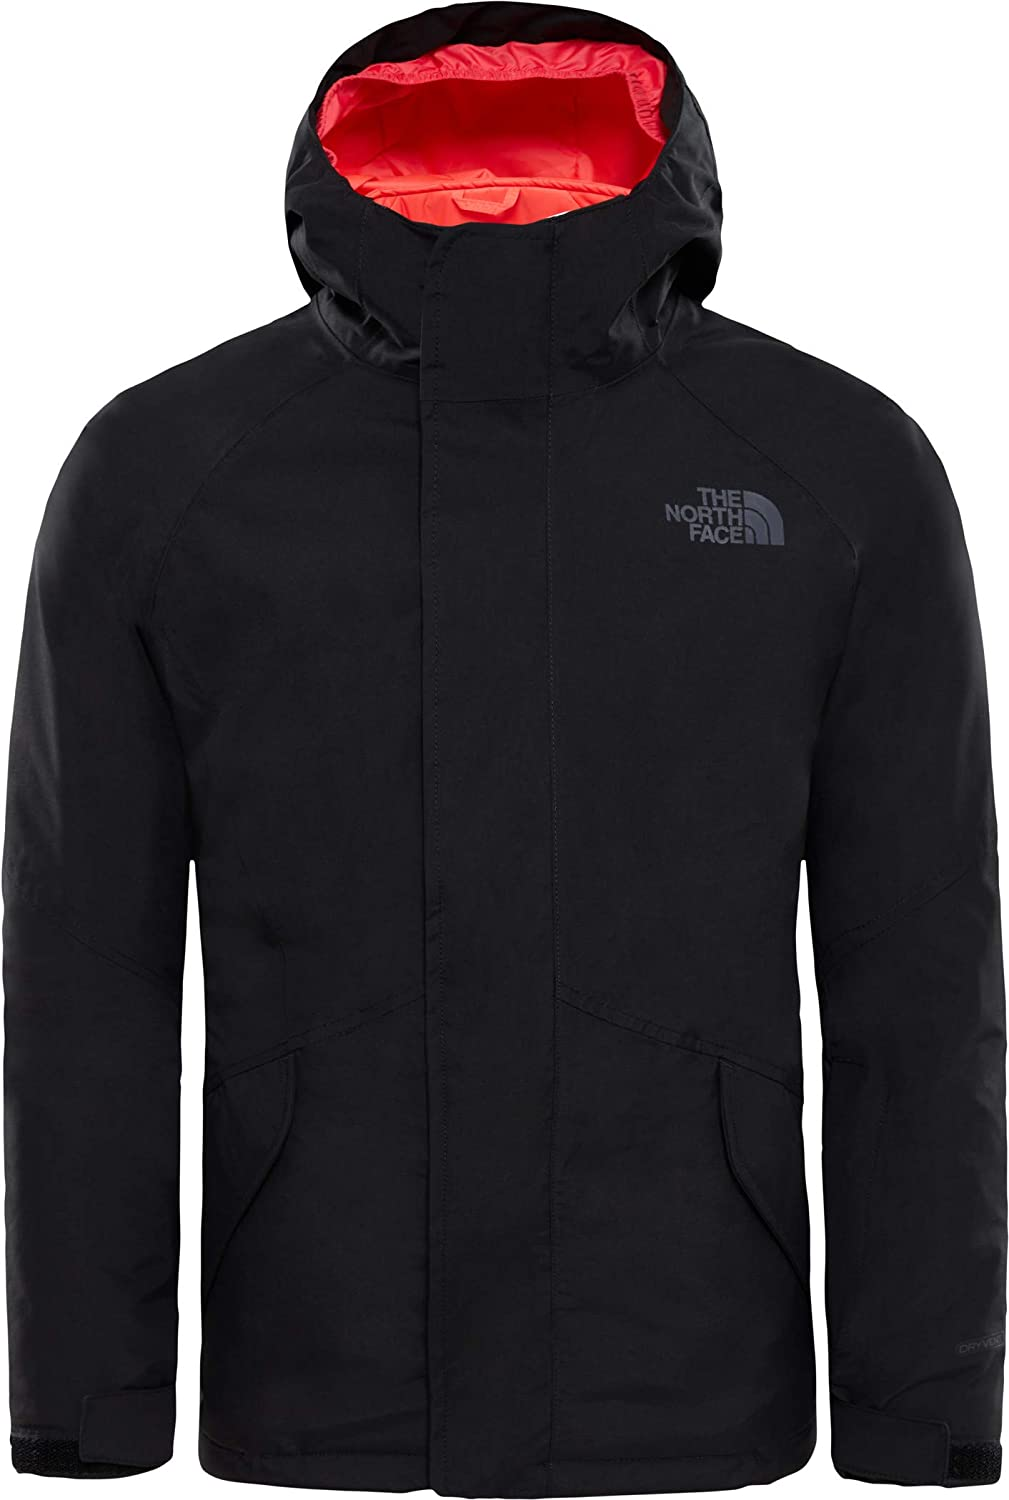 The North Face G Tri Jkt Chaqueta Kira Triclimate, Niñ as Niñas T934WPKX7